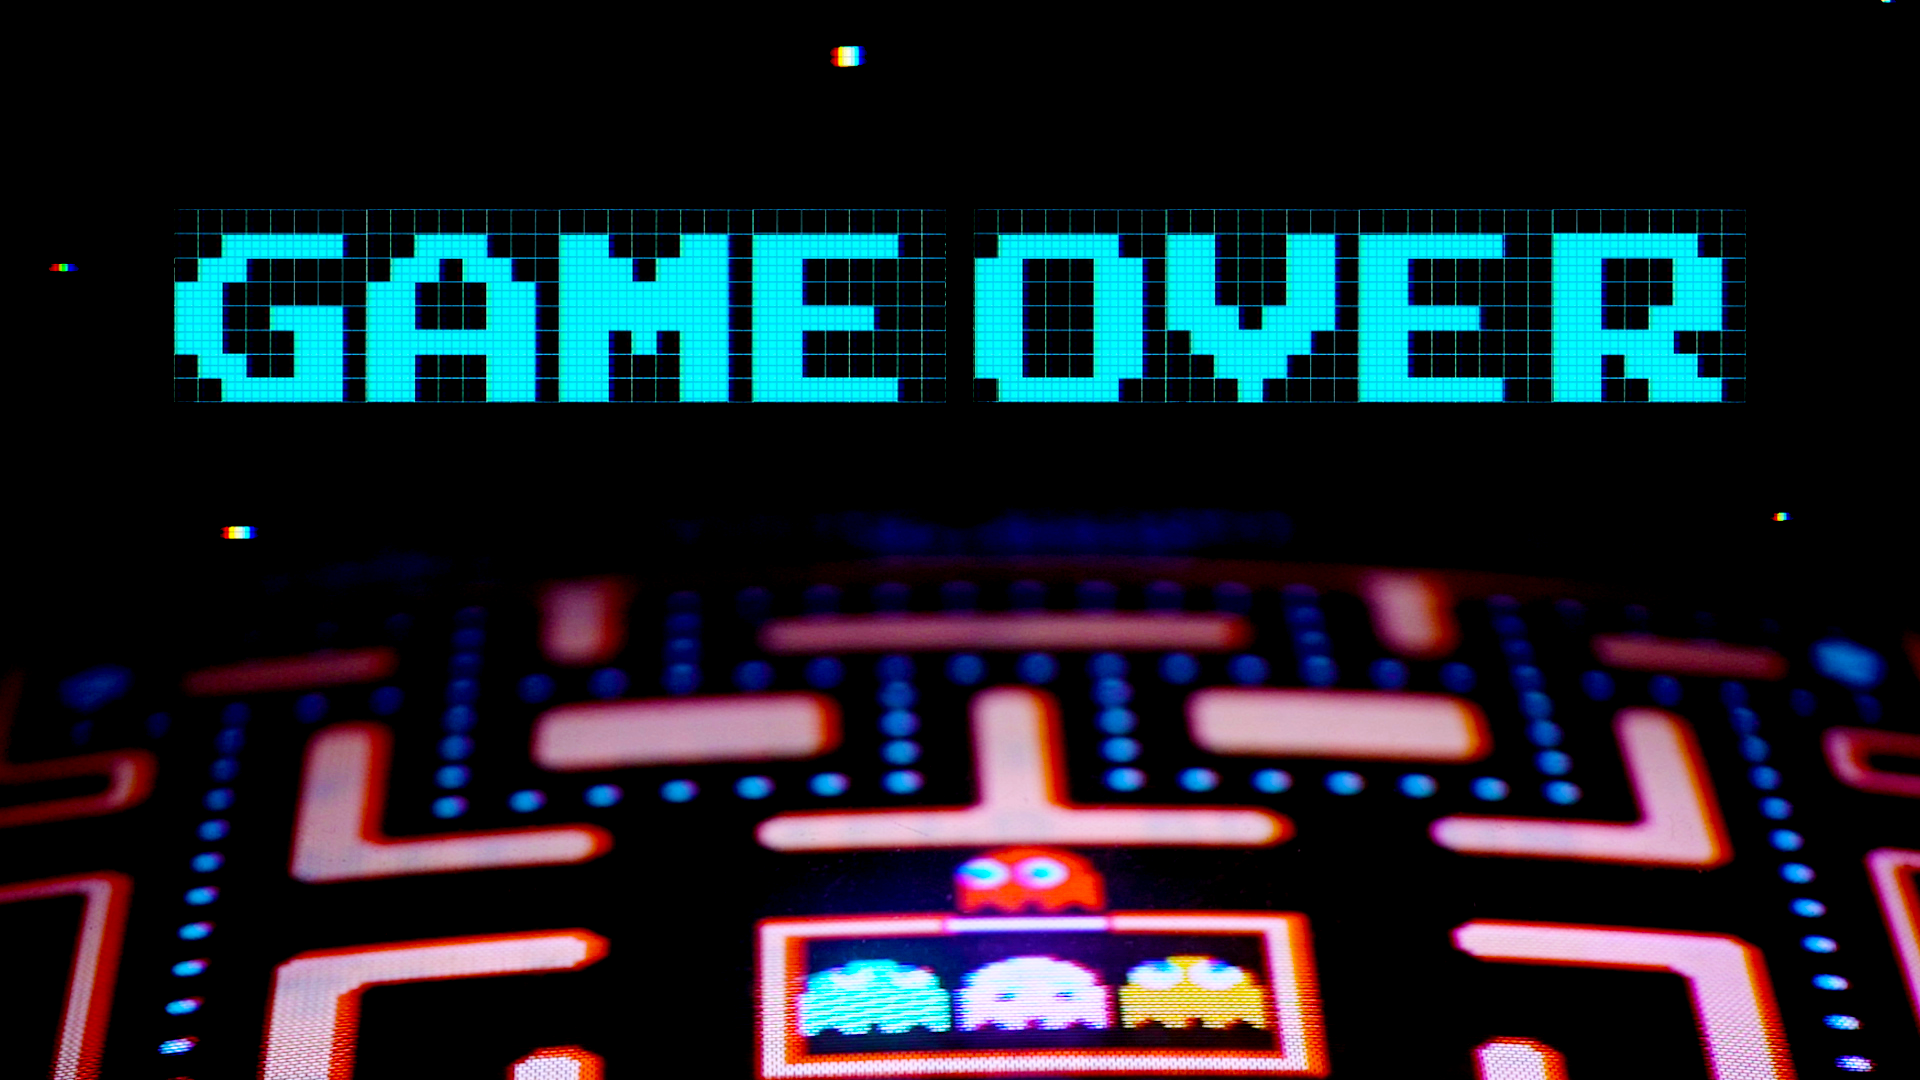 The word game over hovers above a Pac-Man arcade screen